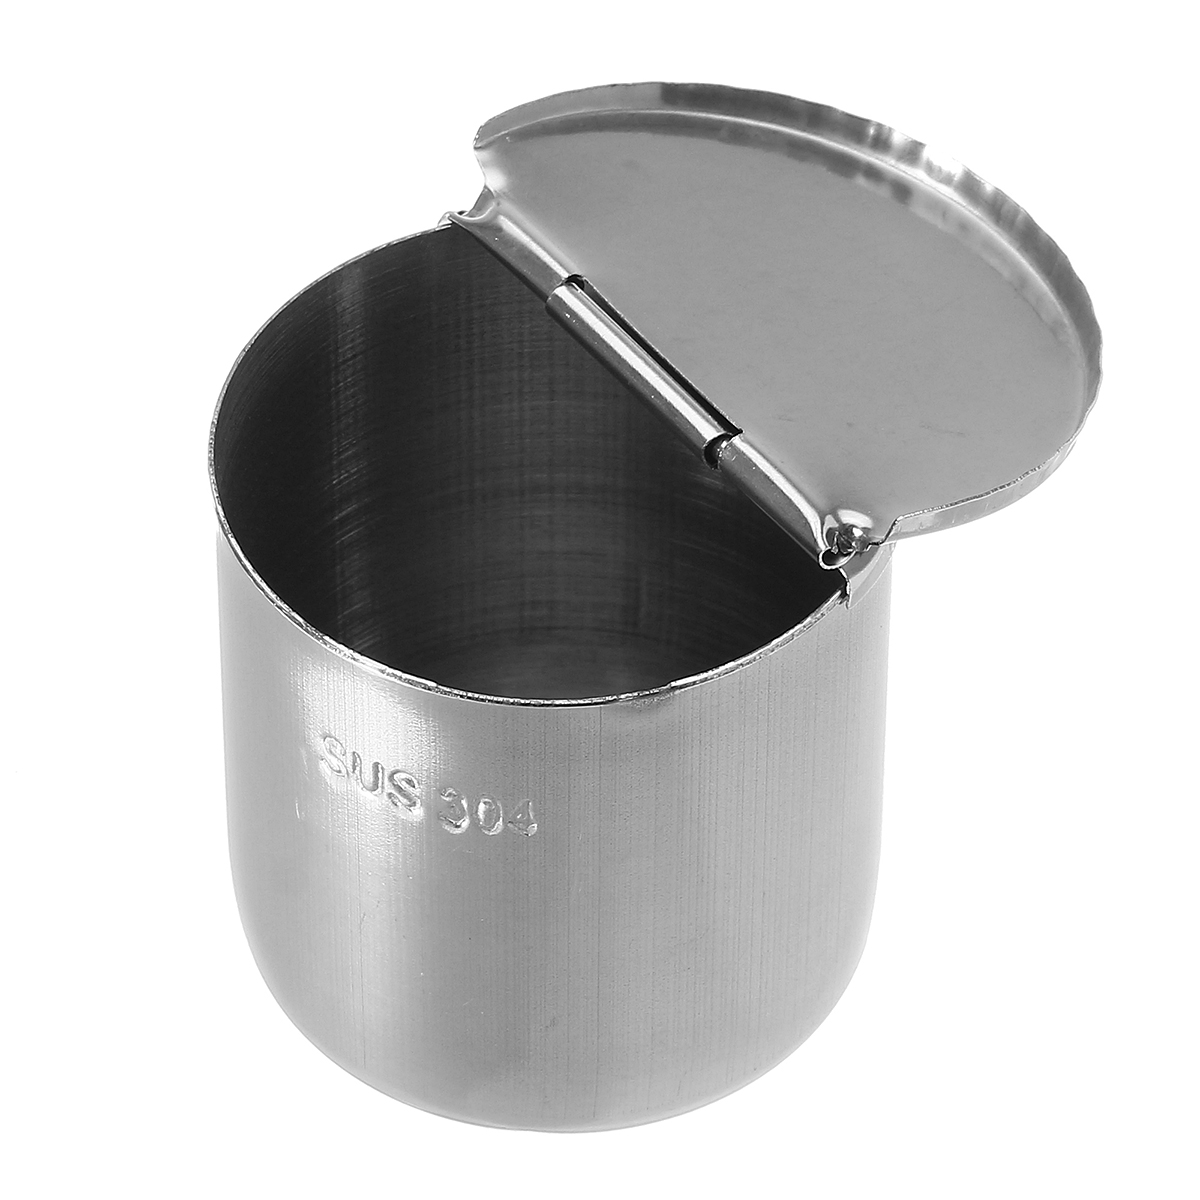 1pc Medical Cotton Alcohol Disinfection Jar Half Clamshell Oral Ointment Cylinder Tank Holder Stainless Steel Dental Material